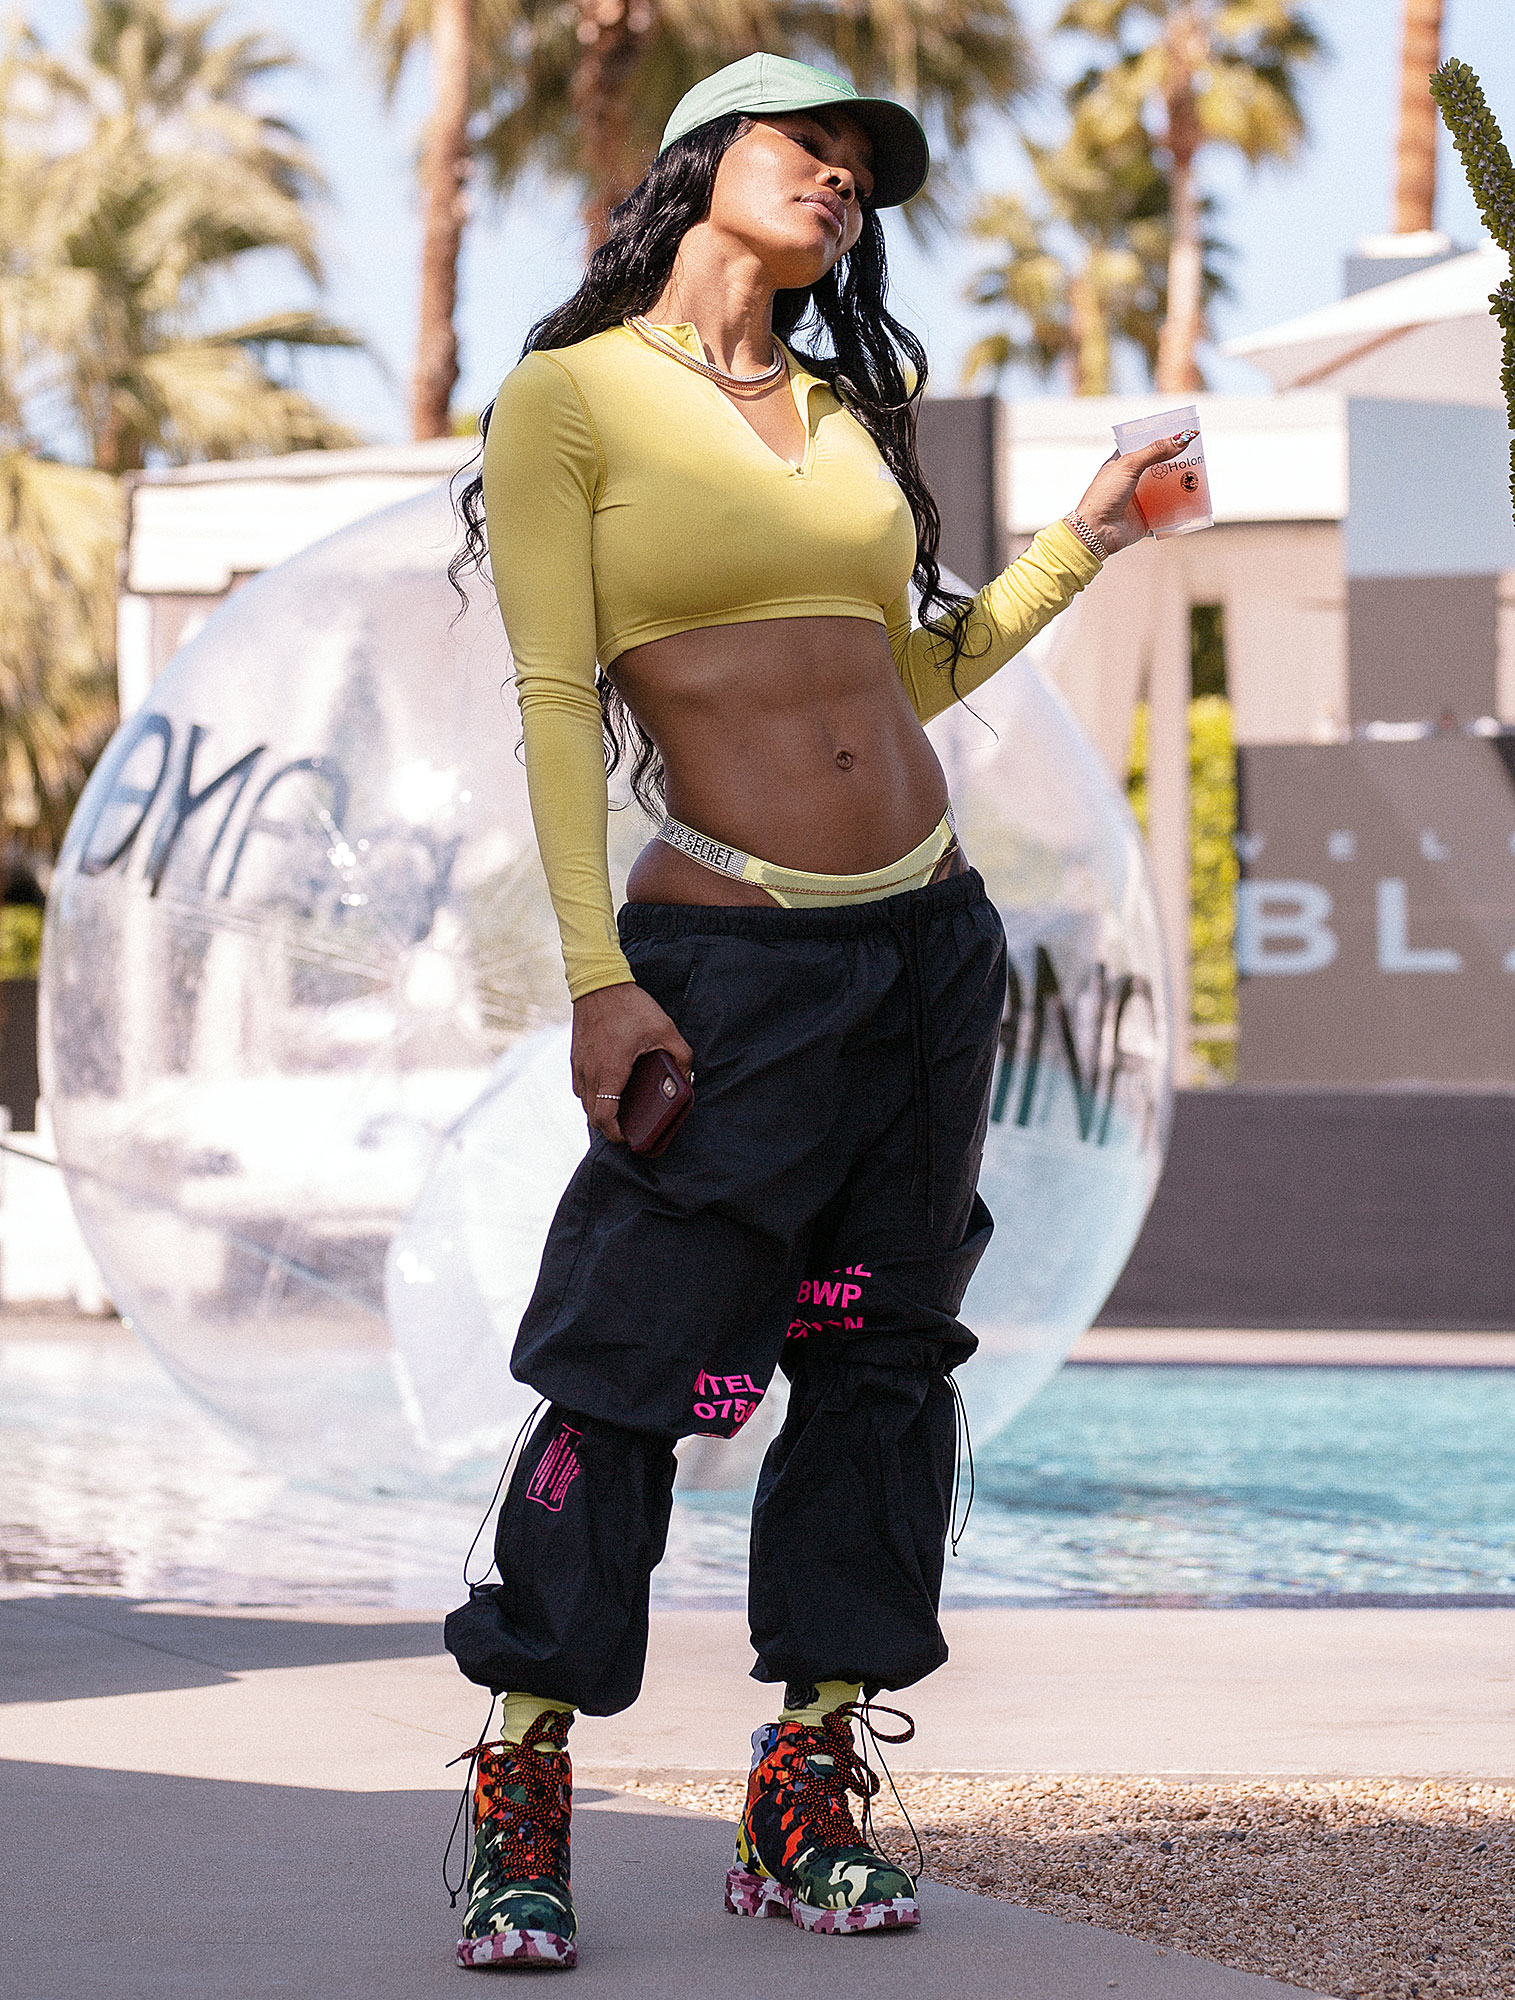 Teyana Taylor Velocity Black Desert Beach Club Coachella - The singer posed poolside at the Velocity Black Desert Beach Club Presented by Mate Bikes and Nana Judy on Friday, April 12.